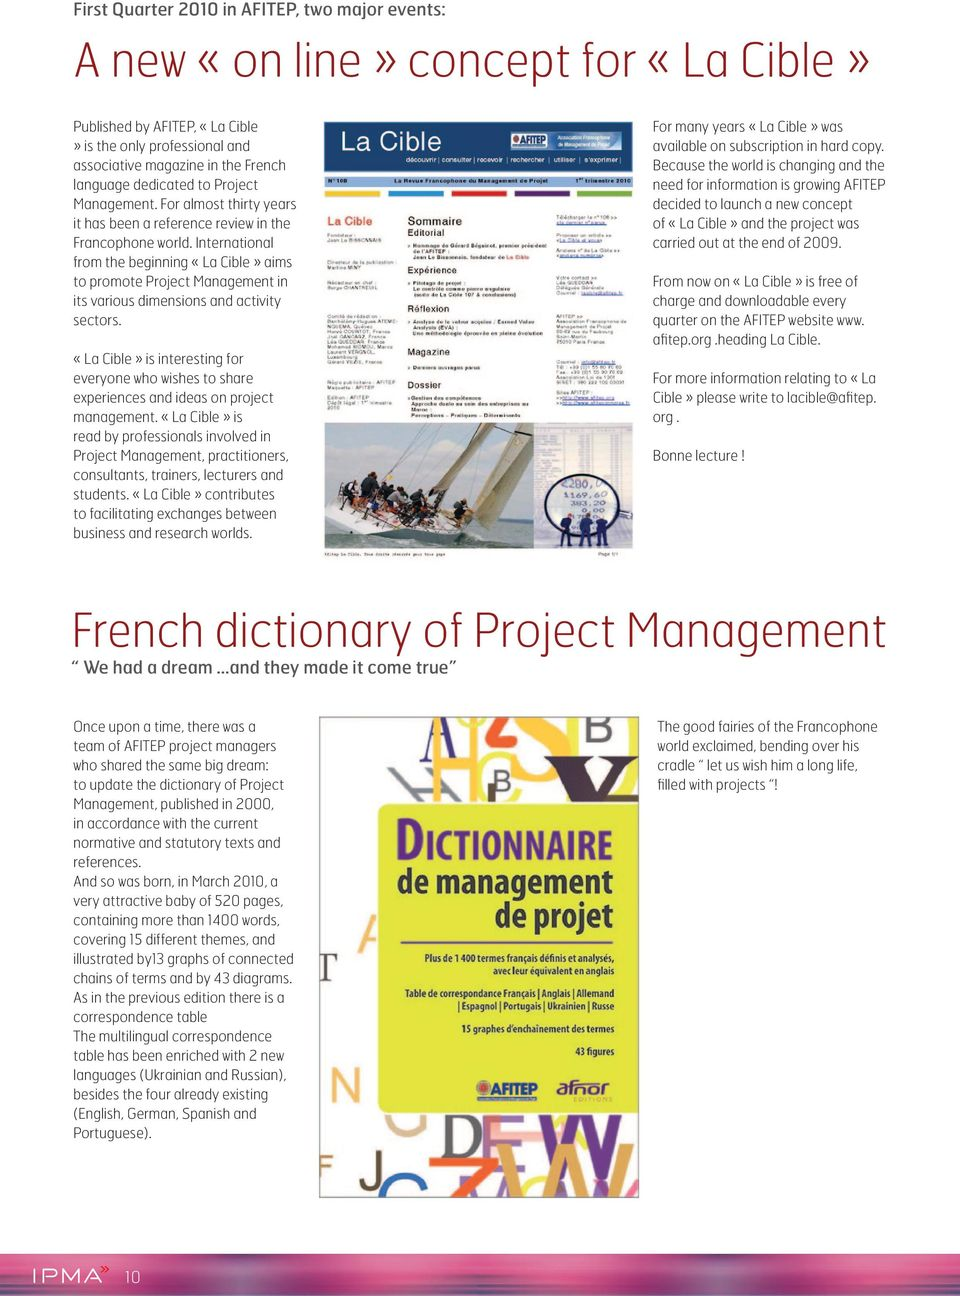 International from the beginning «La Cible» aims to promote Project Management in its various dimensions and activity sectors.